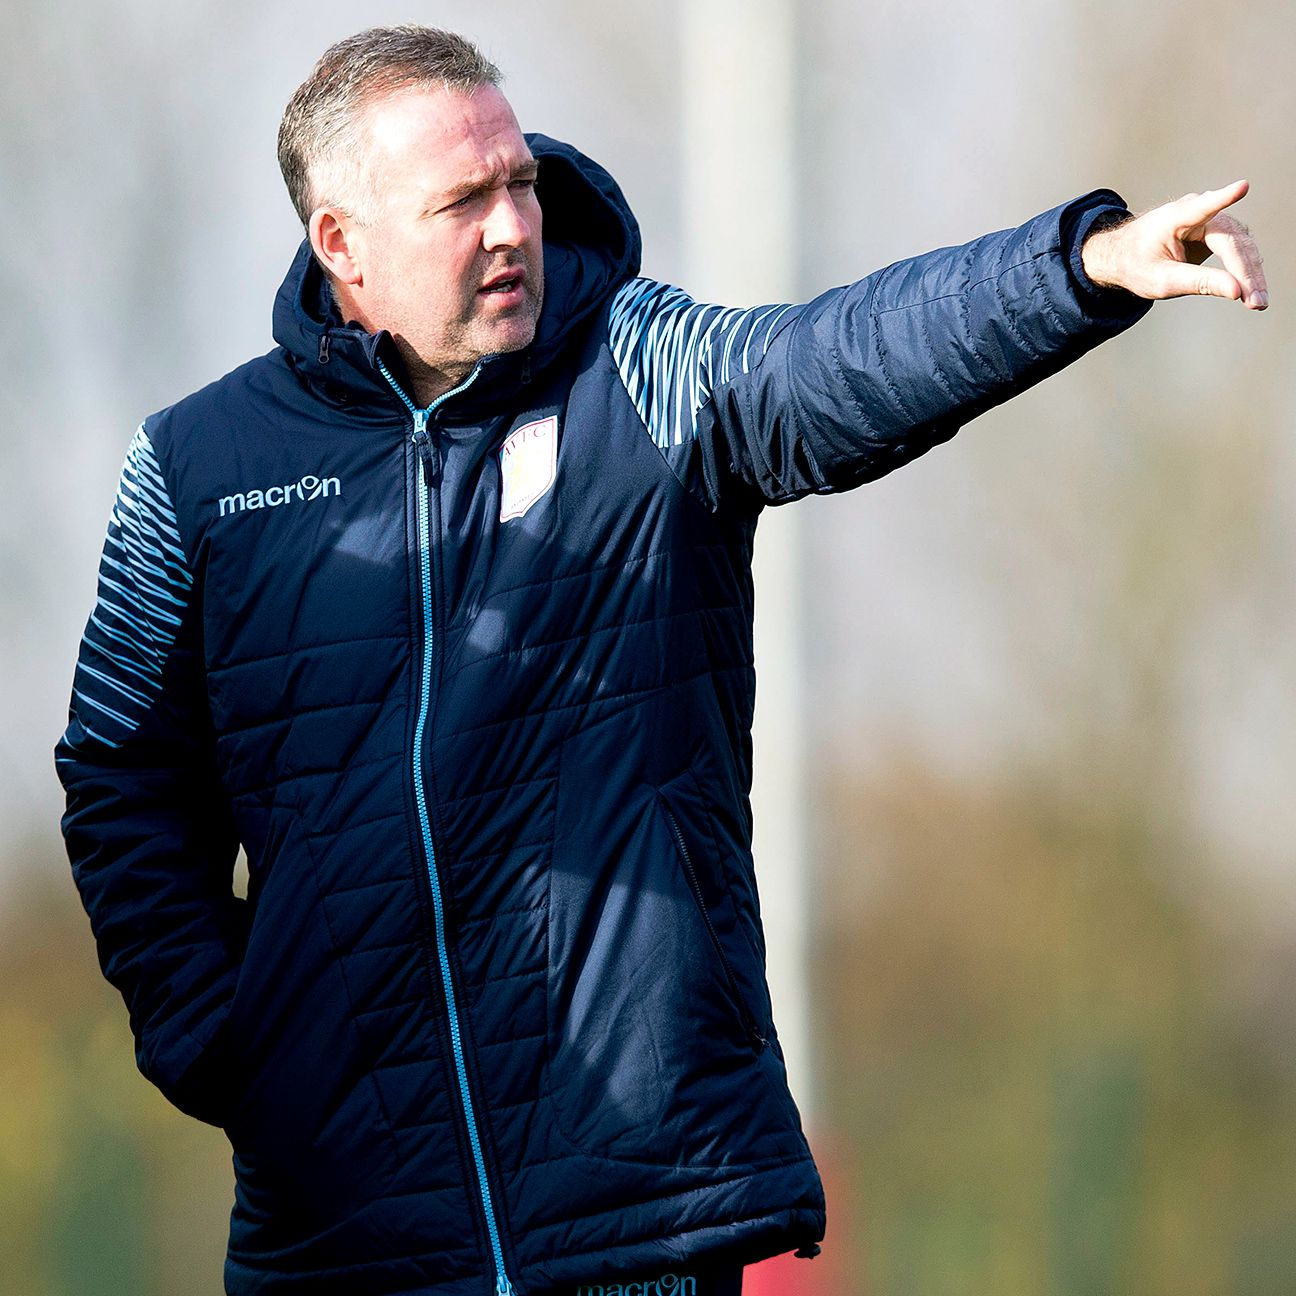 Paul Lambert's side got a boost of confidence after winning midweek at Palace.